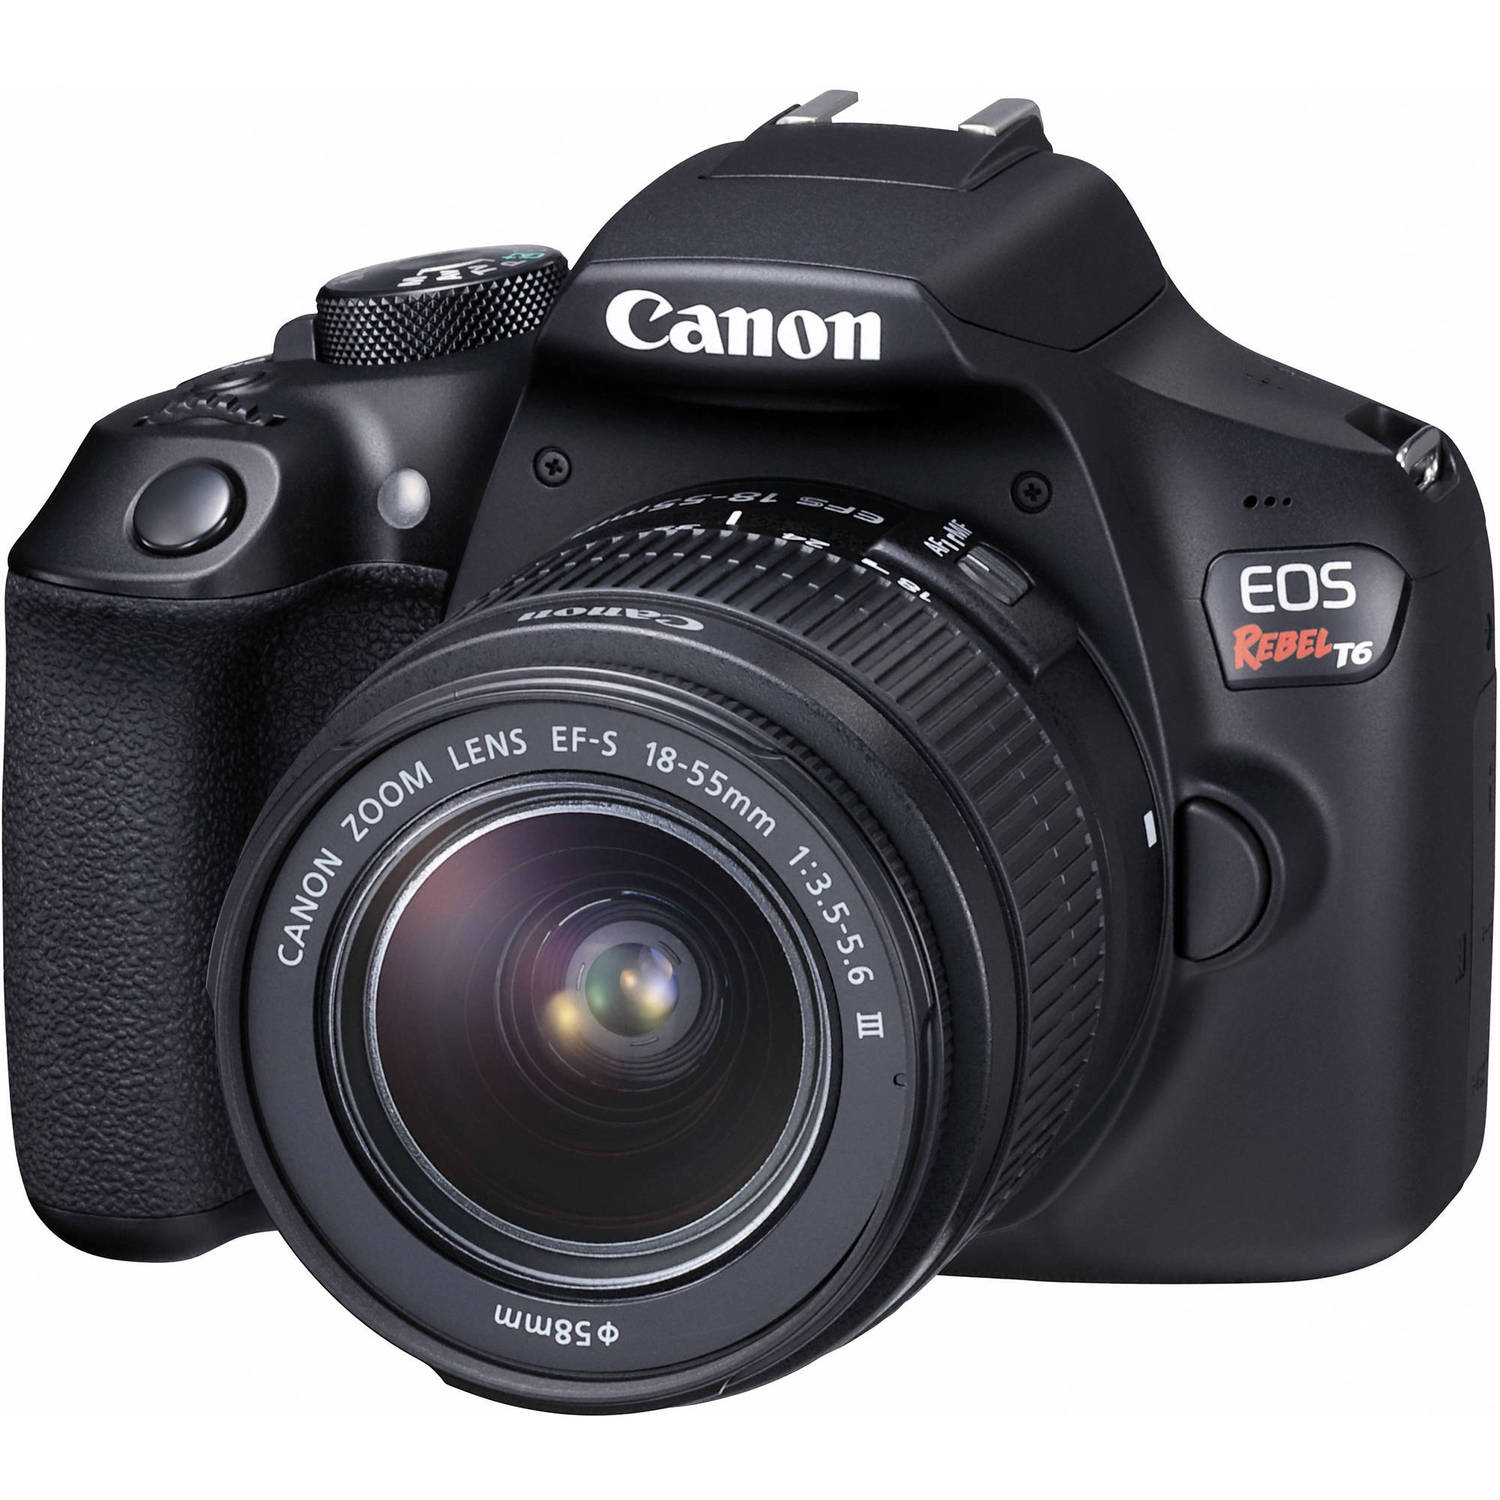 Image for Canon EOS Rebel T6 DSLR Camera with 18-55mm Lens from Circuit City